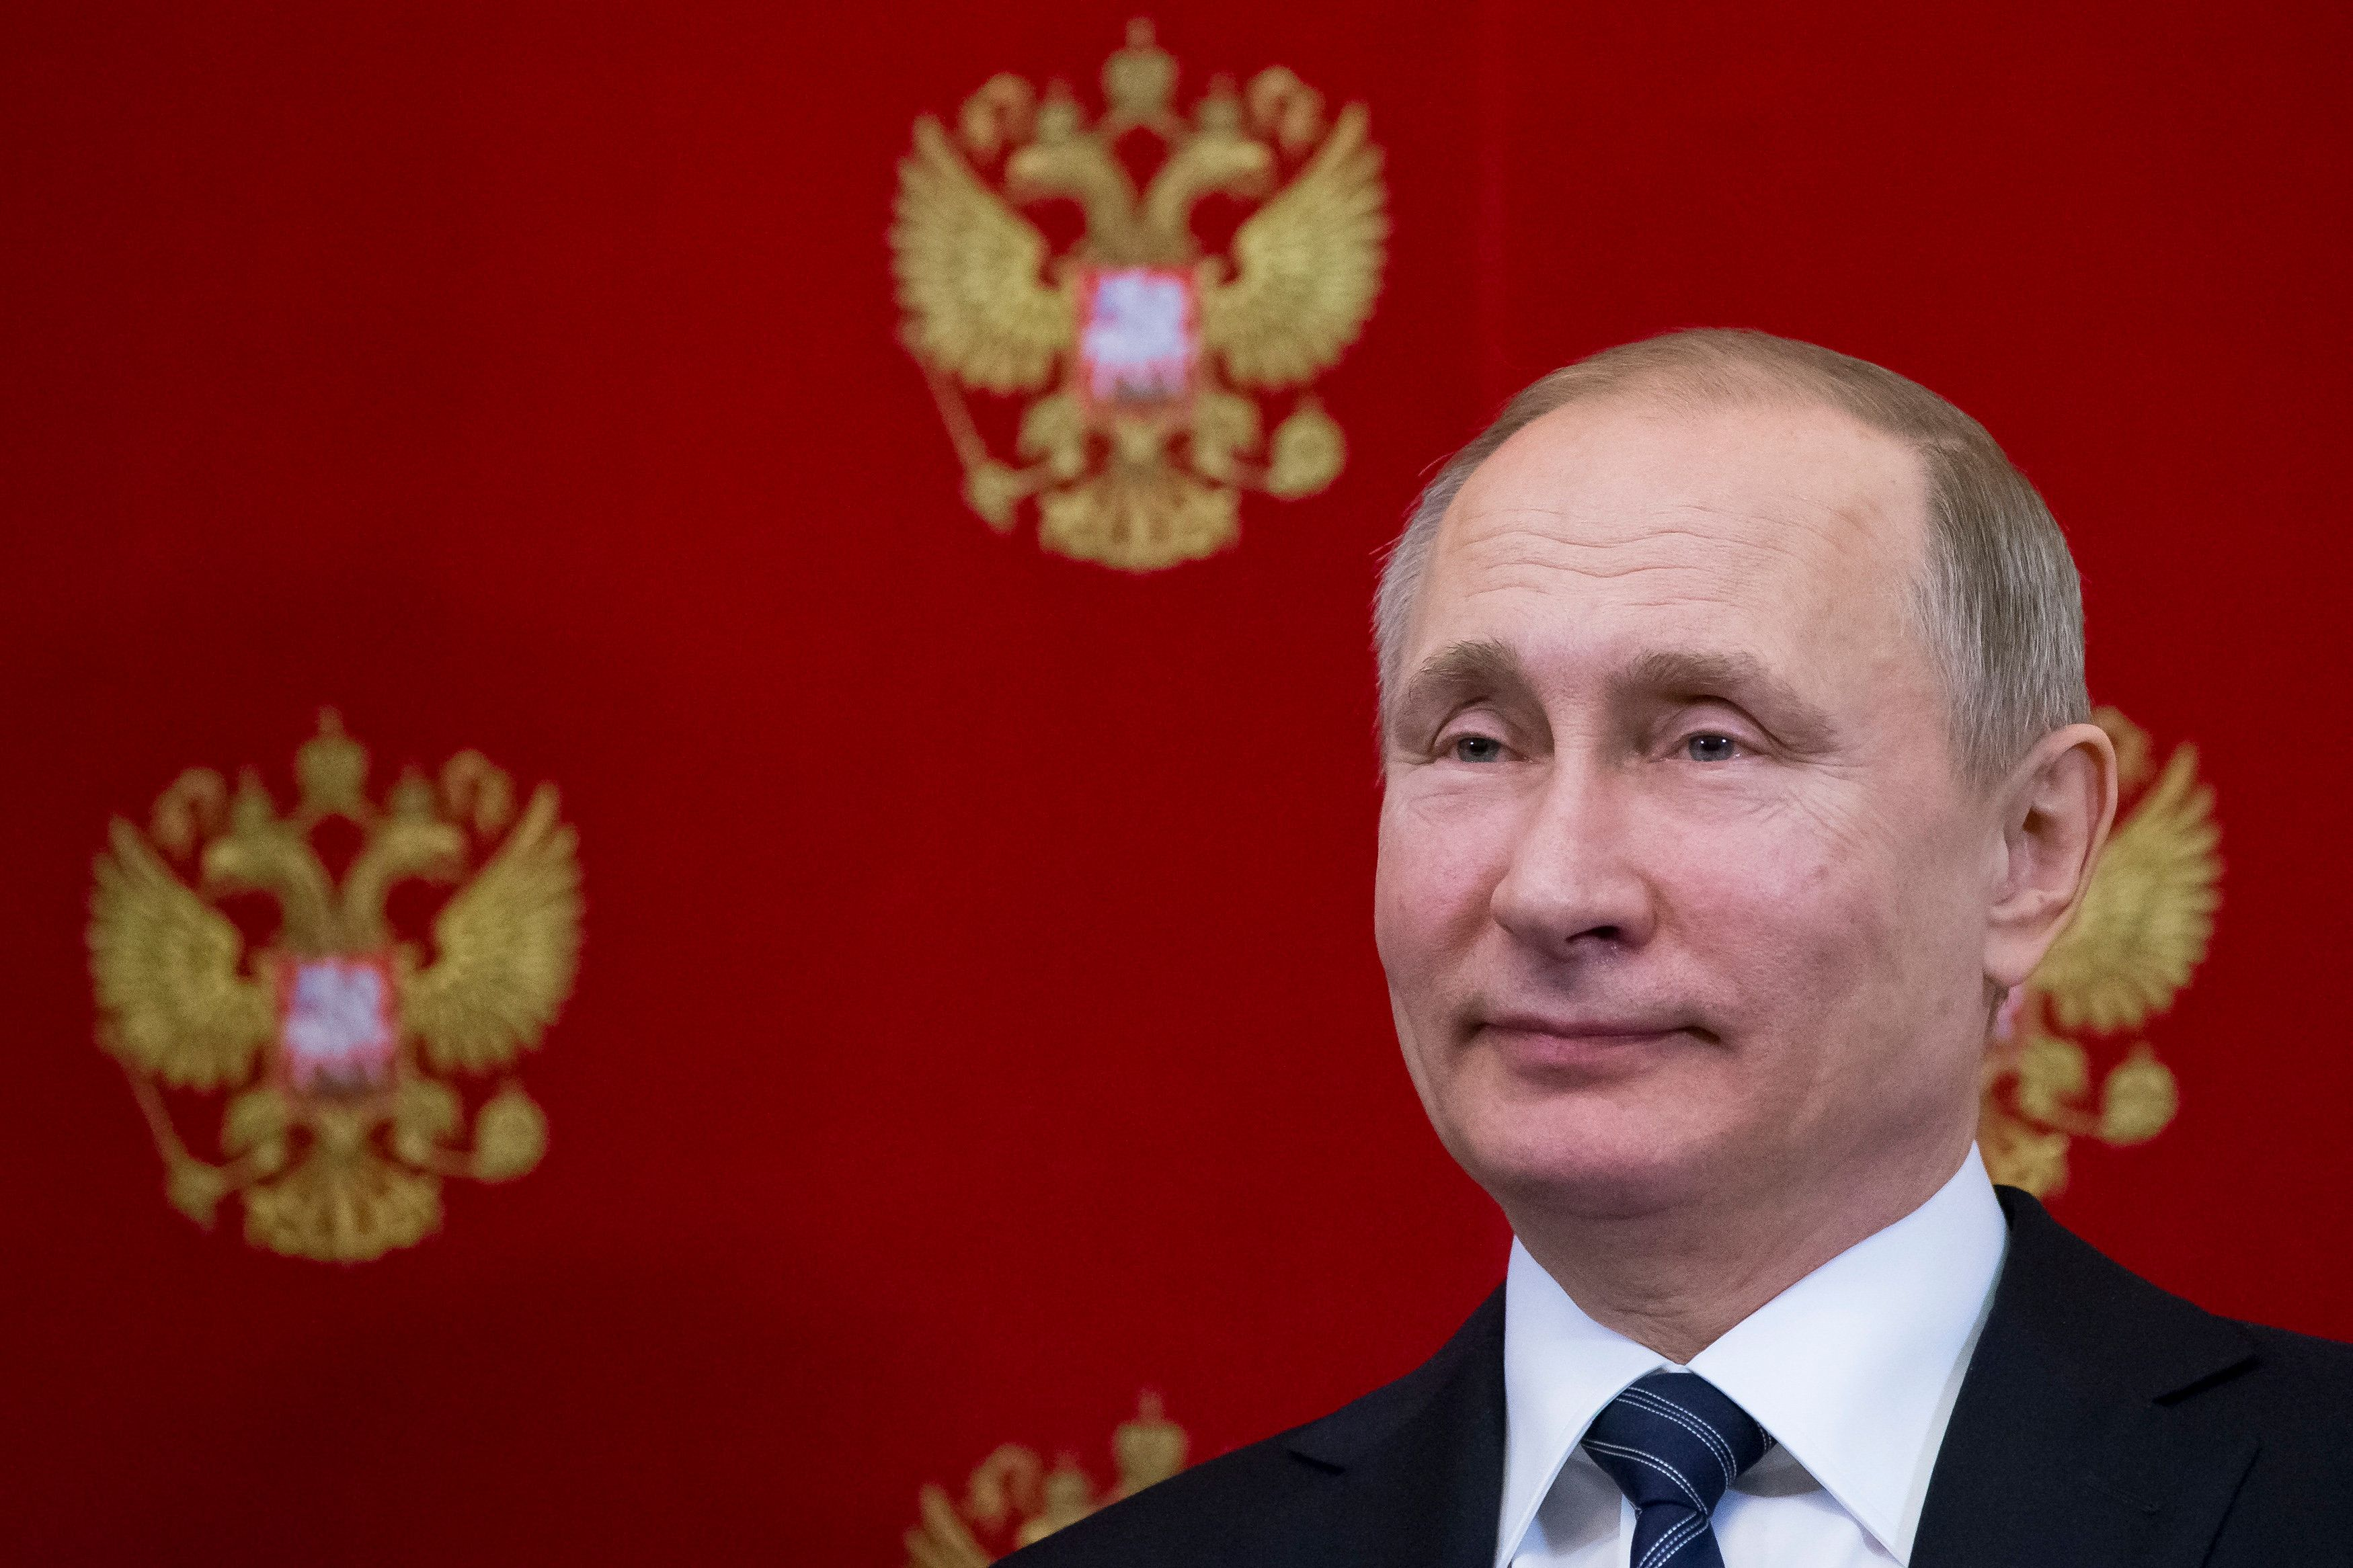 Here We Go Again: Russia Gets Swatted Over Cyberattacks In Another